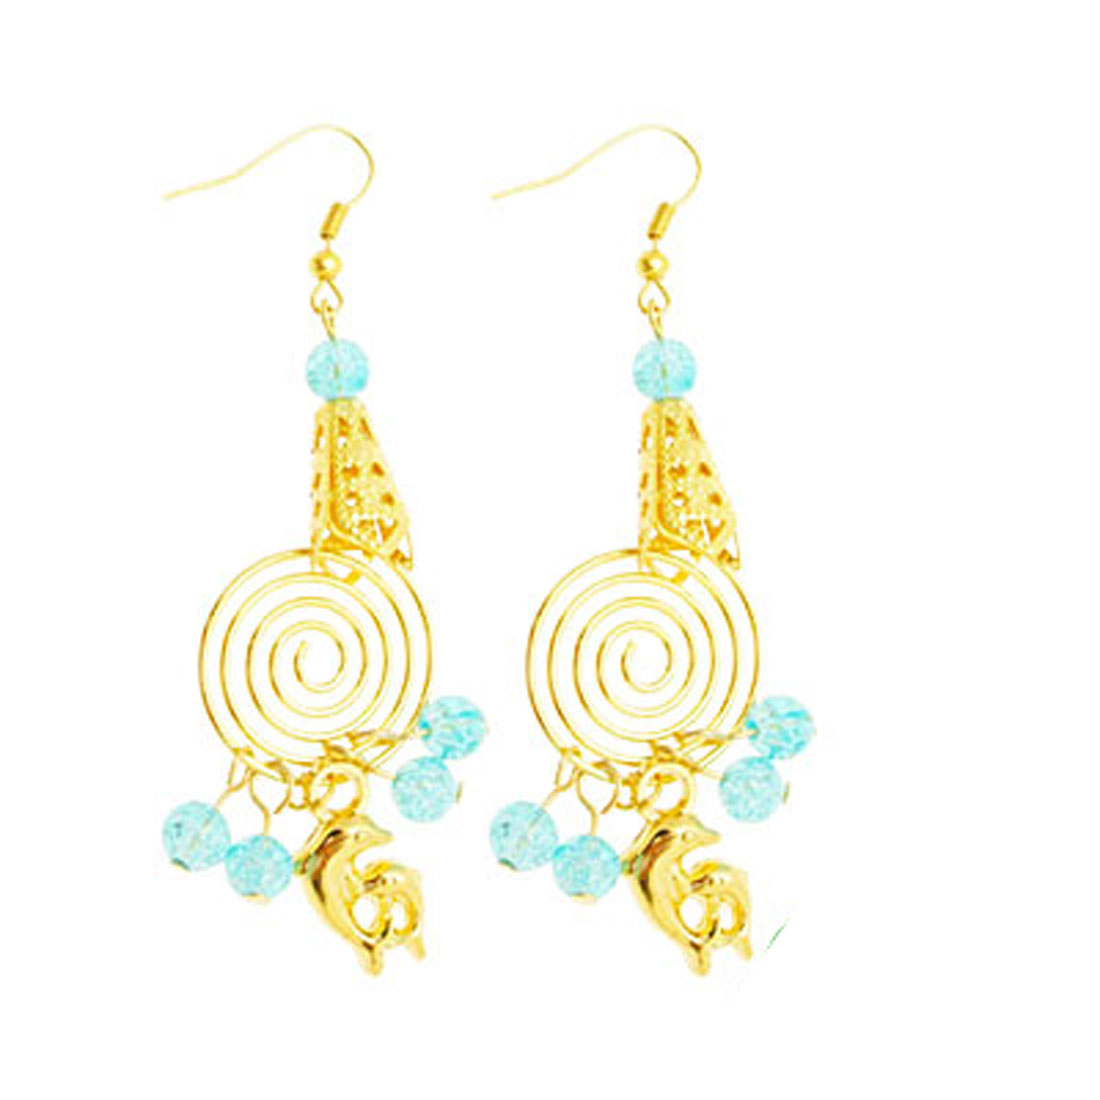 Fashion Jewelry Artsy Handcraft Spiral with Dolphin Pendant Earrings